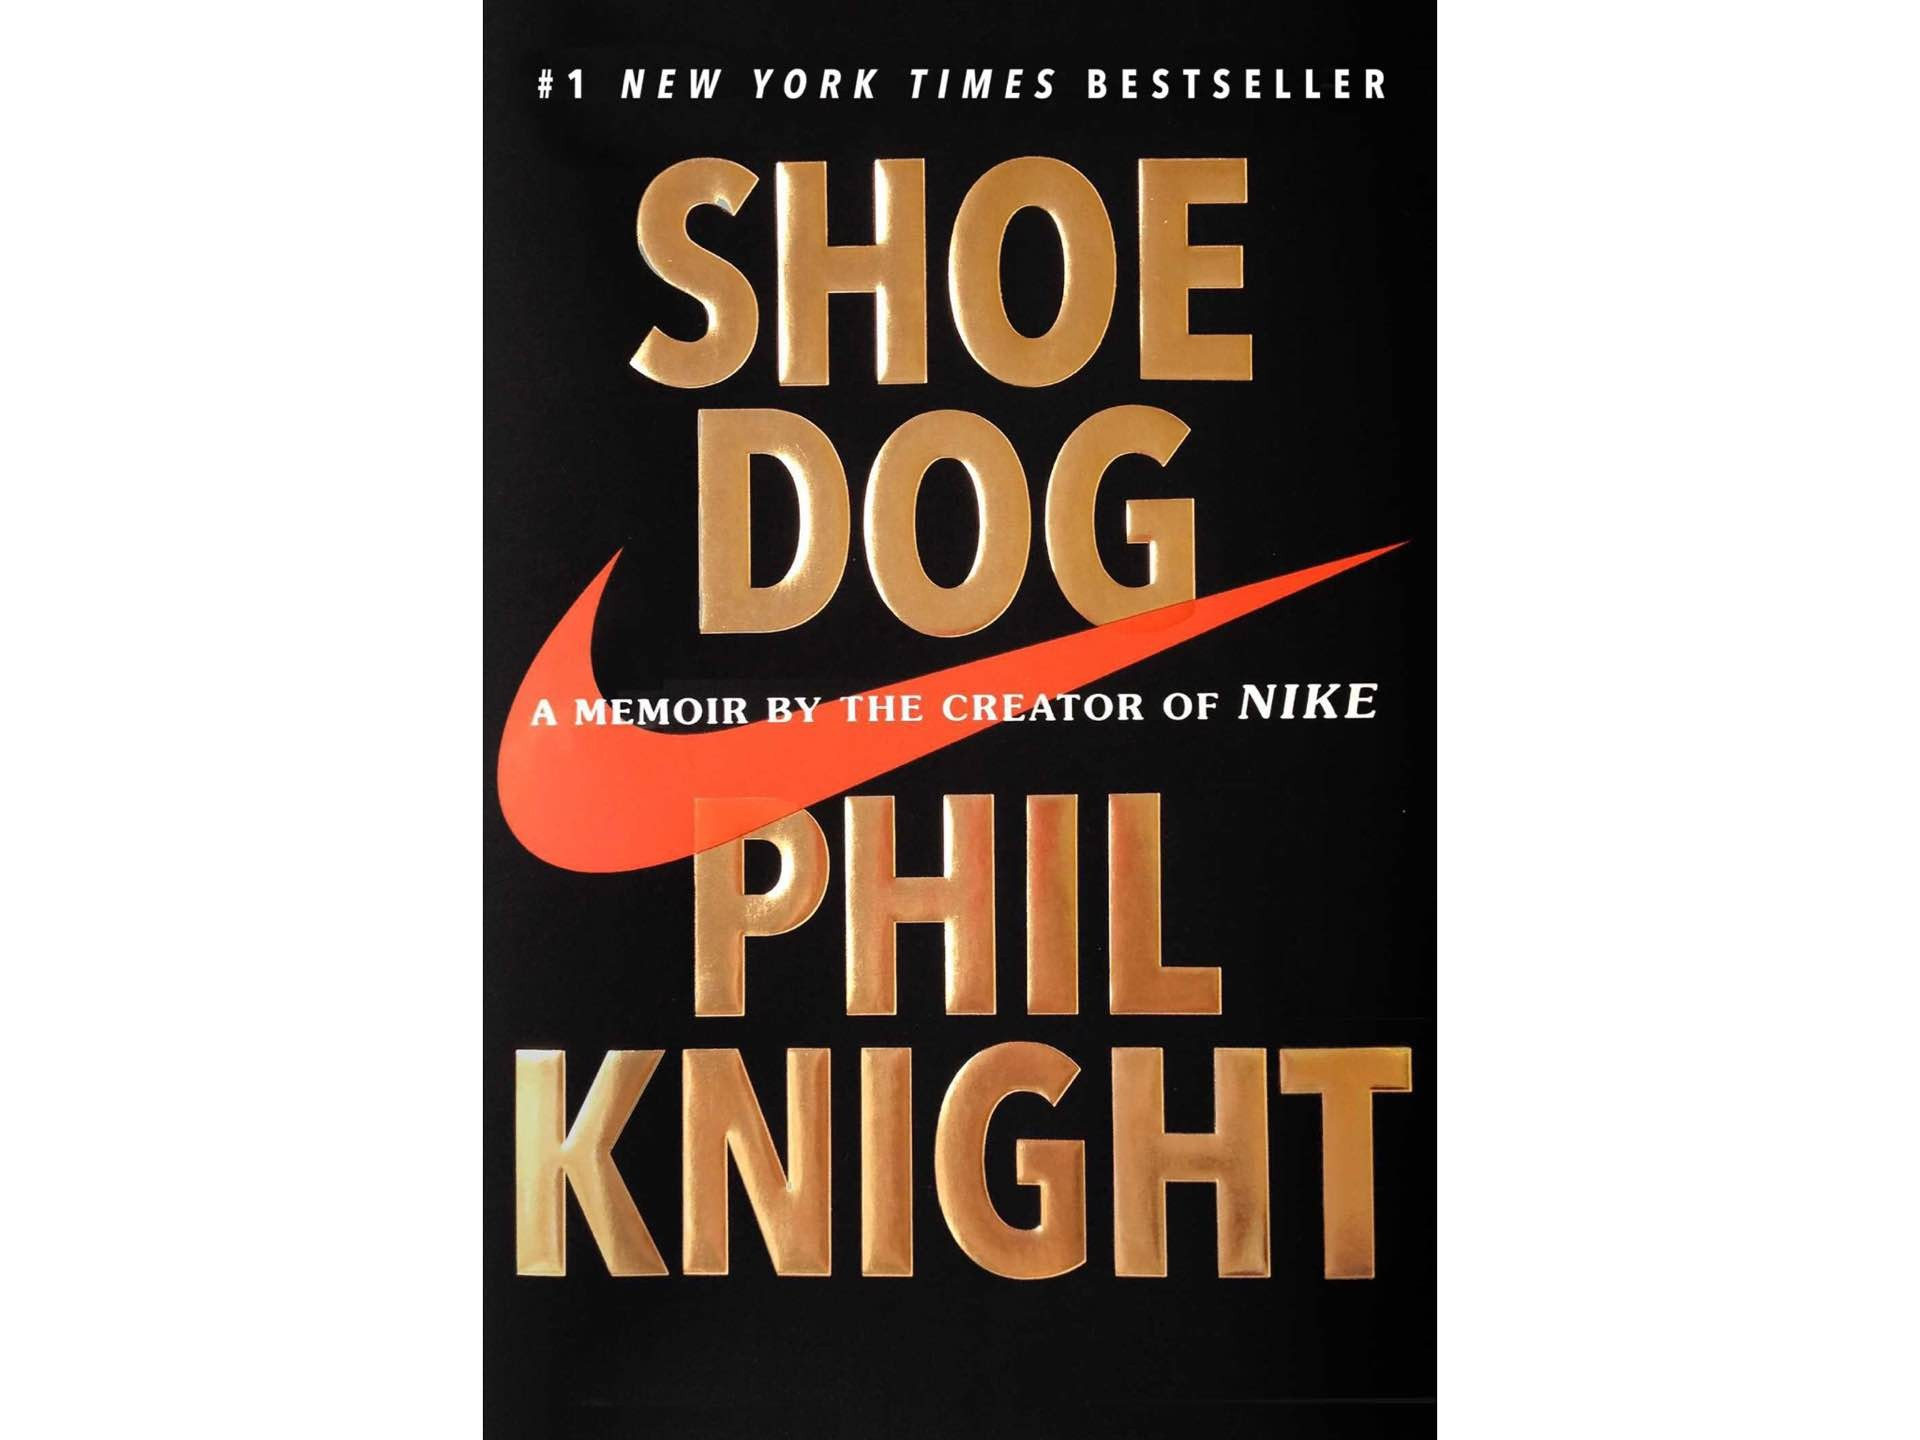 Shoe Dog by Phil Knight. ($19 hardcover)